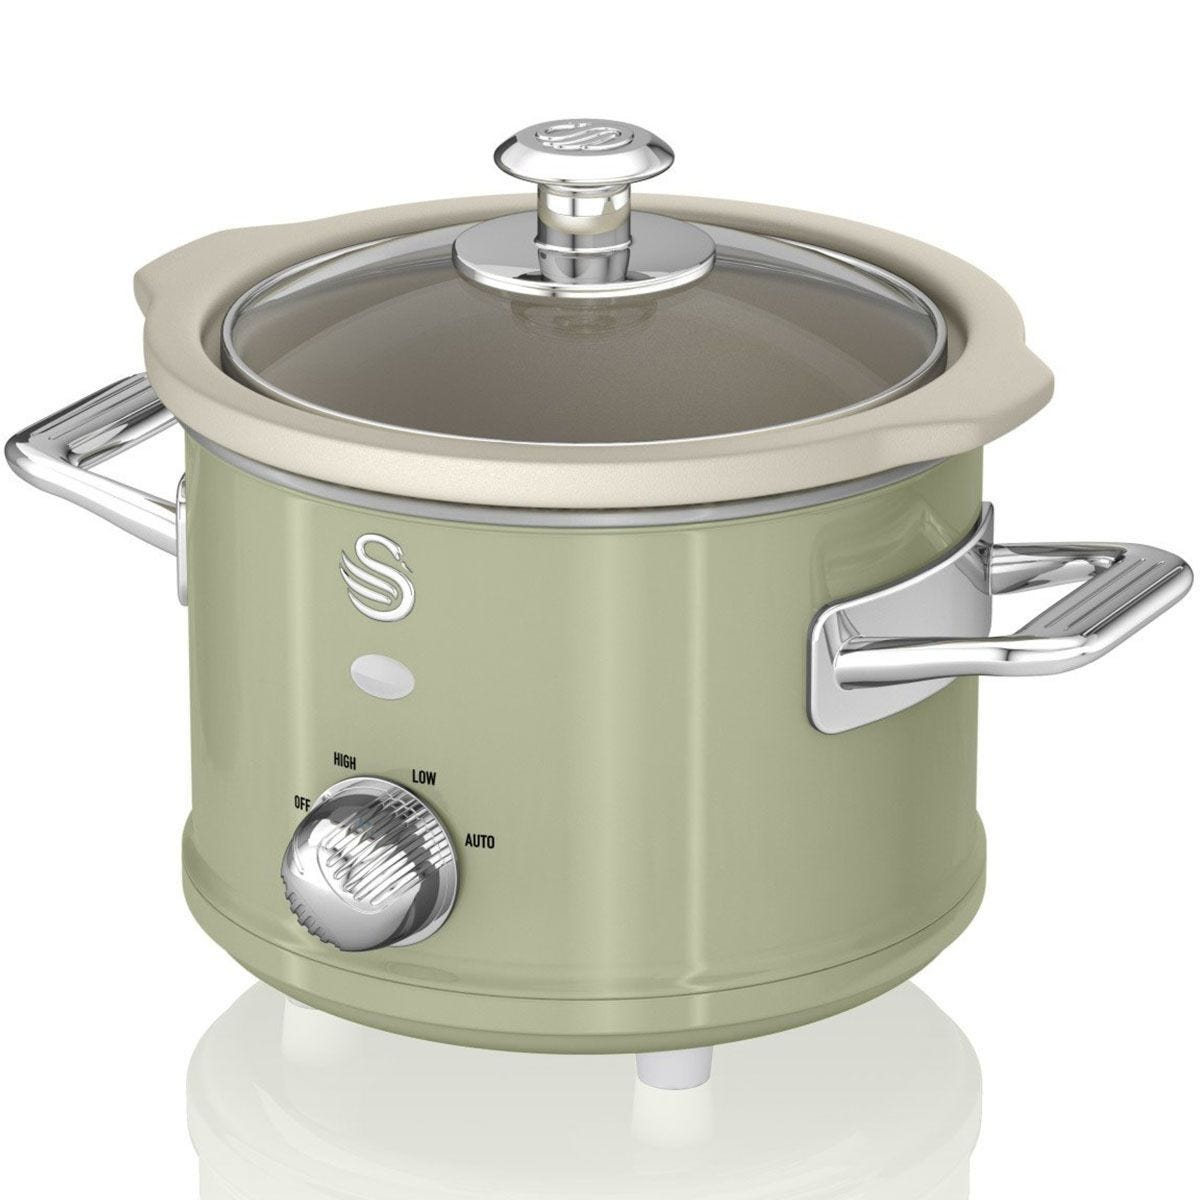 Swan SF17011GN 1.5L Retro Slow Cooker - Green